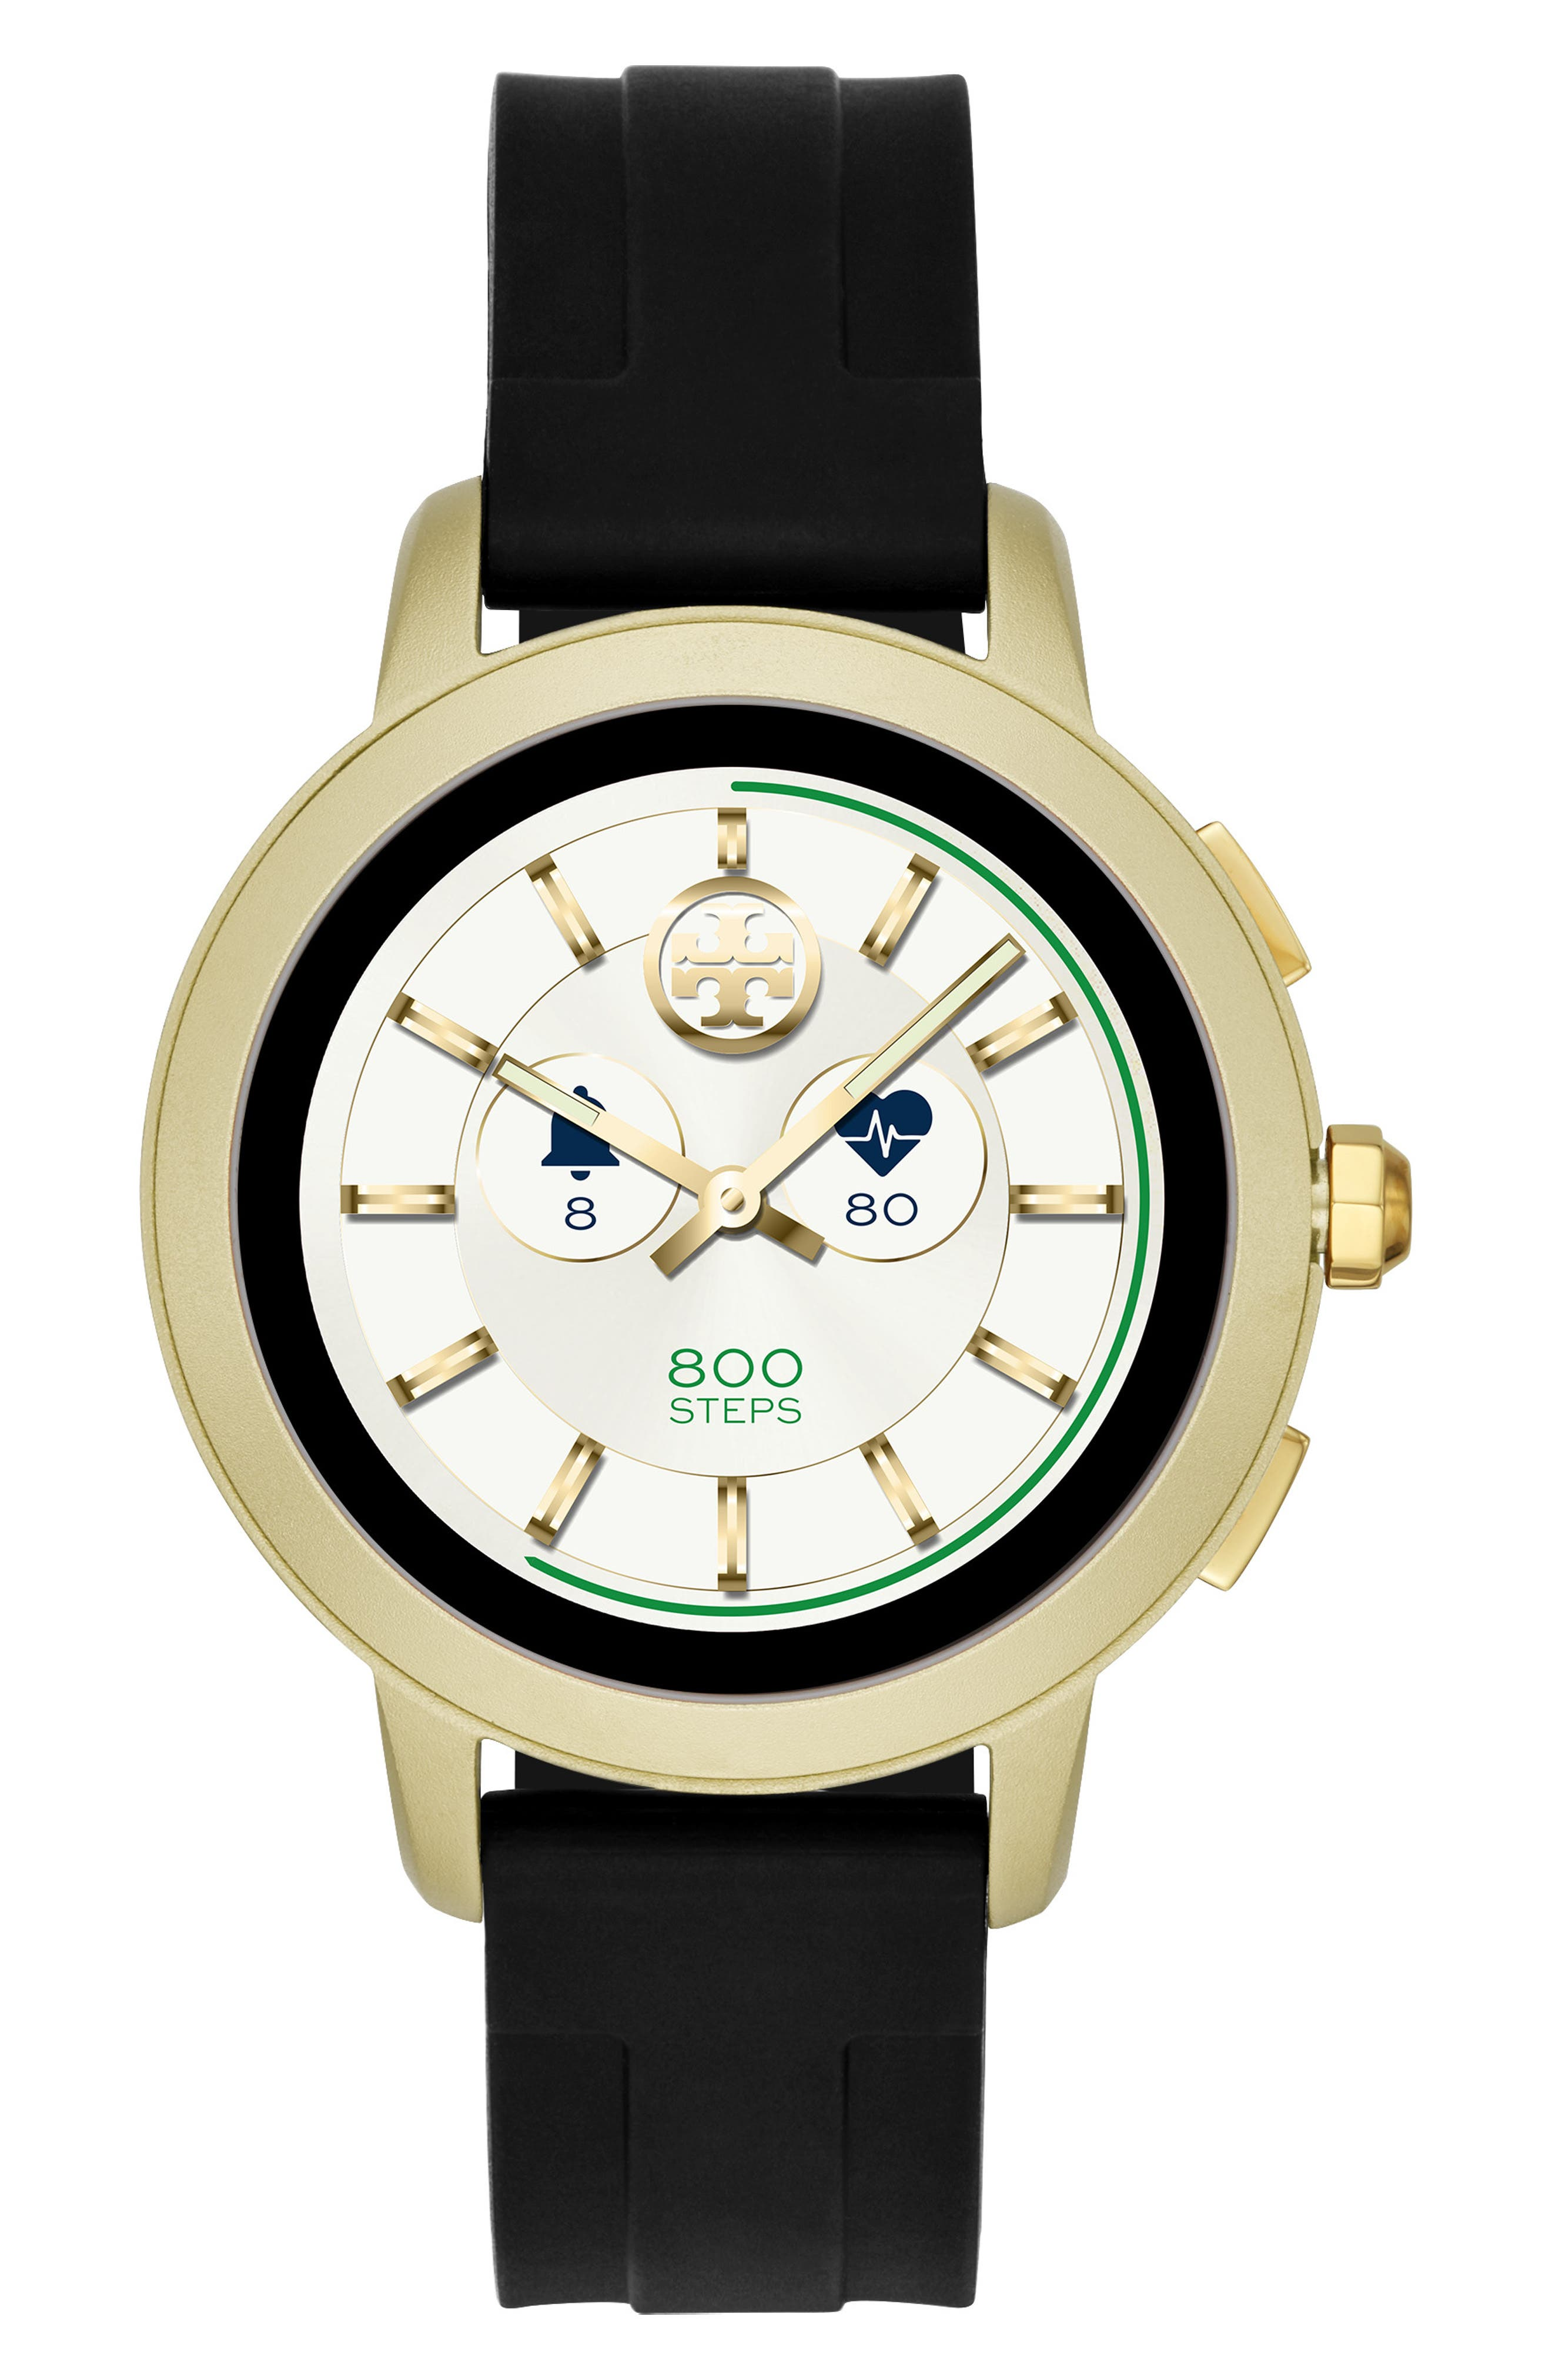 Image of Tory Burch Women's Silicone Strap Smart Watch, 42mm